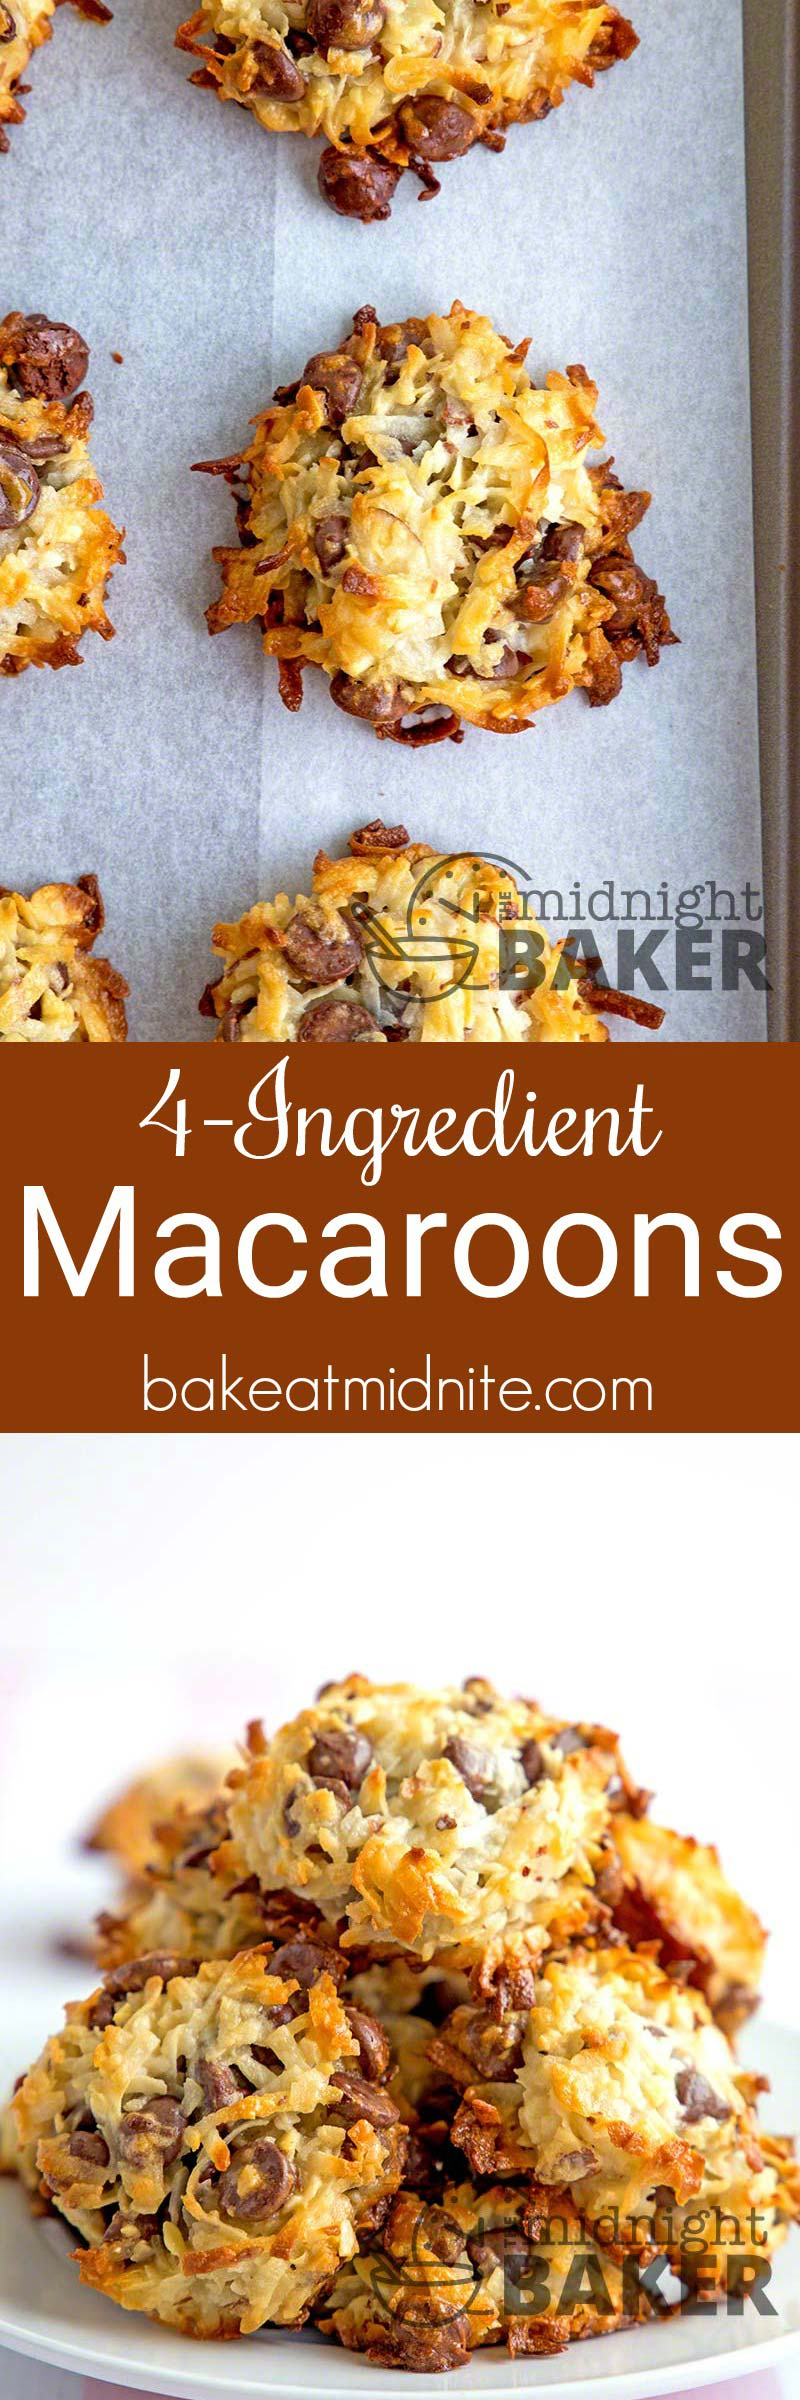 If you've got a late-night hankering for something sweet, these macaroons come together in a jiffy and you probably have the 4 ingredients to make them in your pantry!